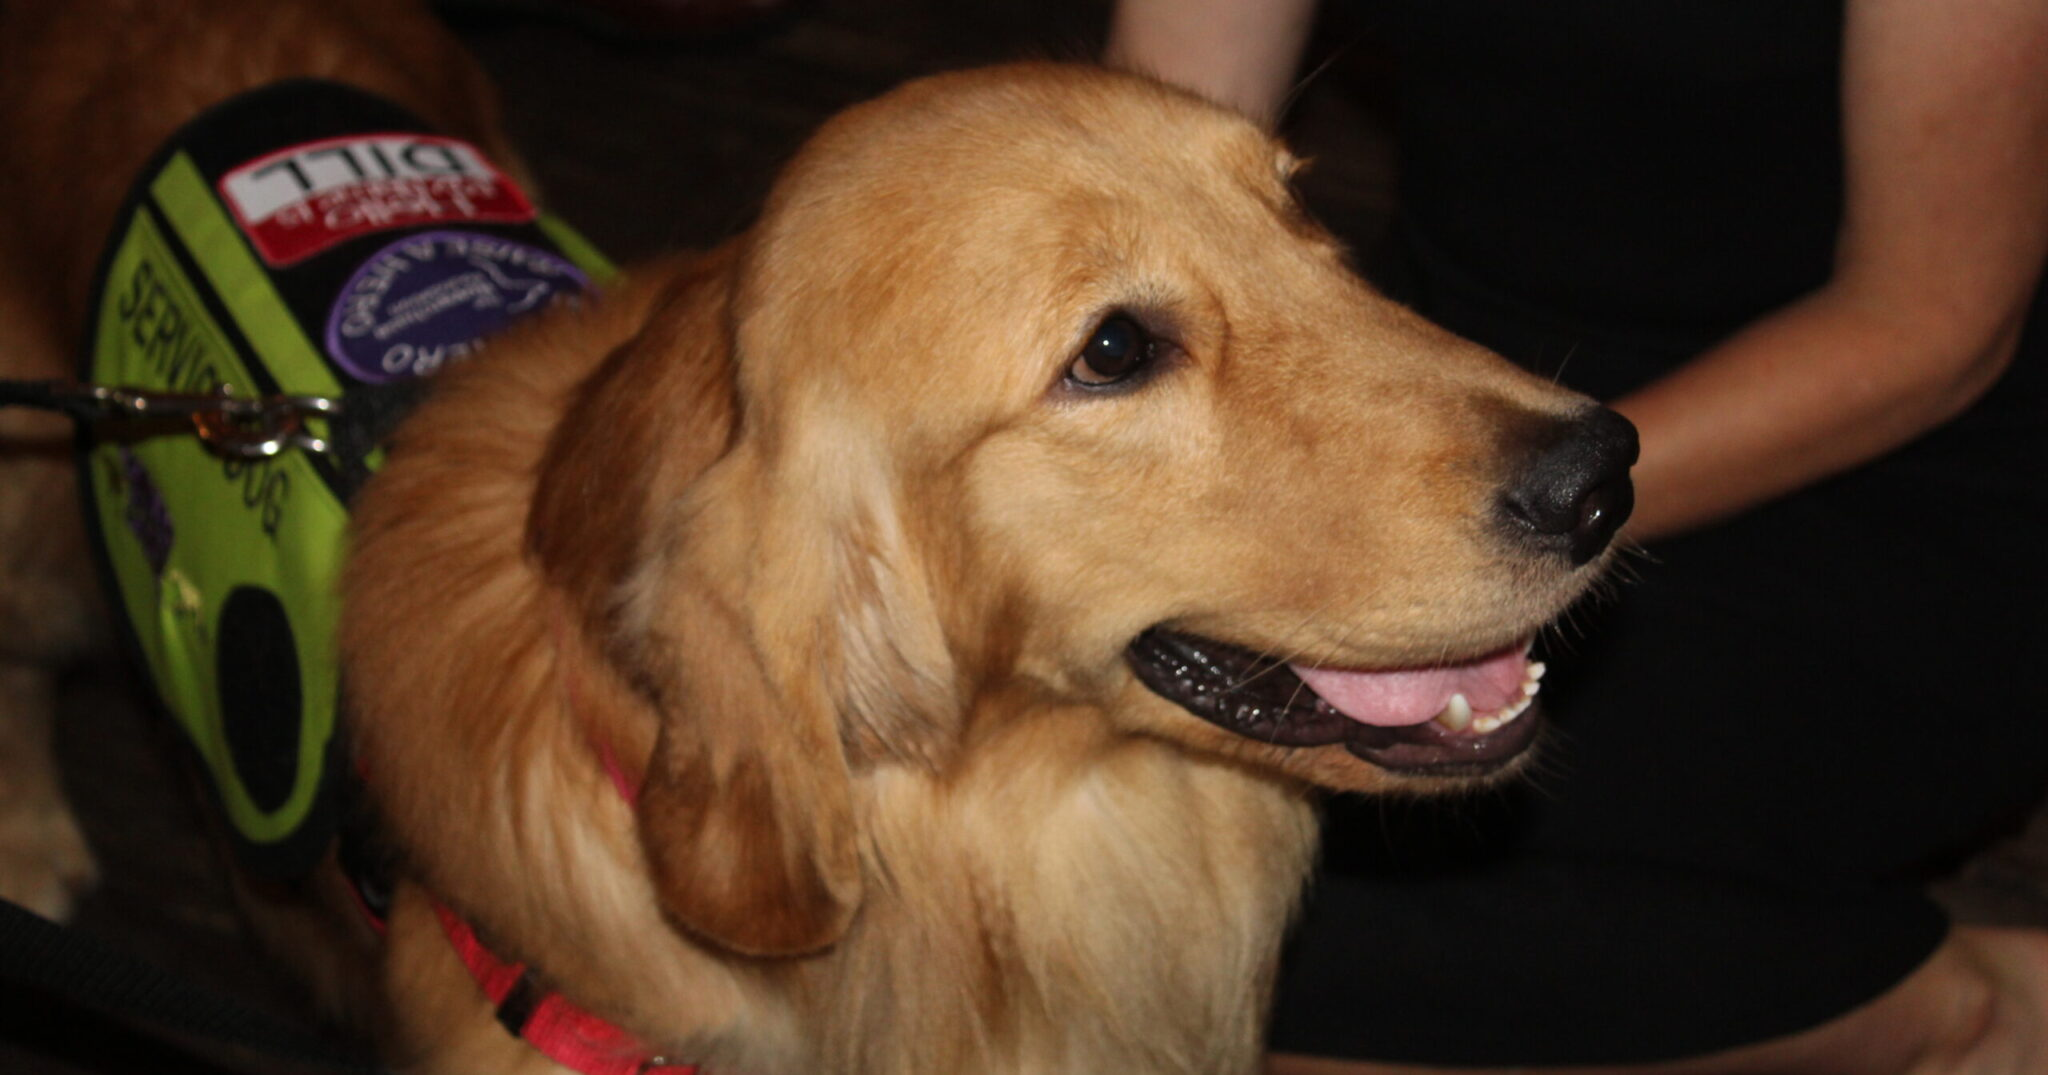 5 amazing service dogs graduate from The Roverchase Foundation program